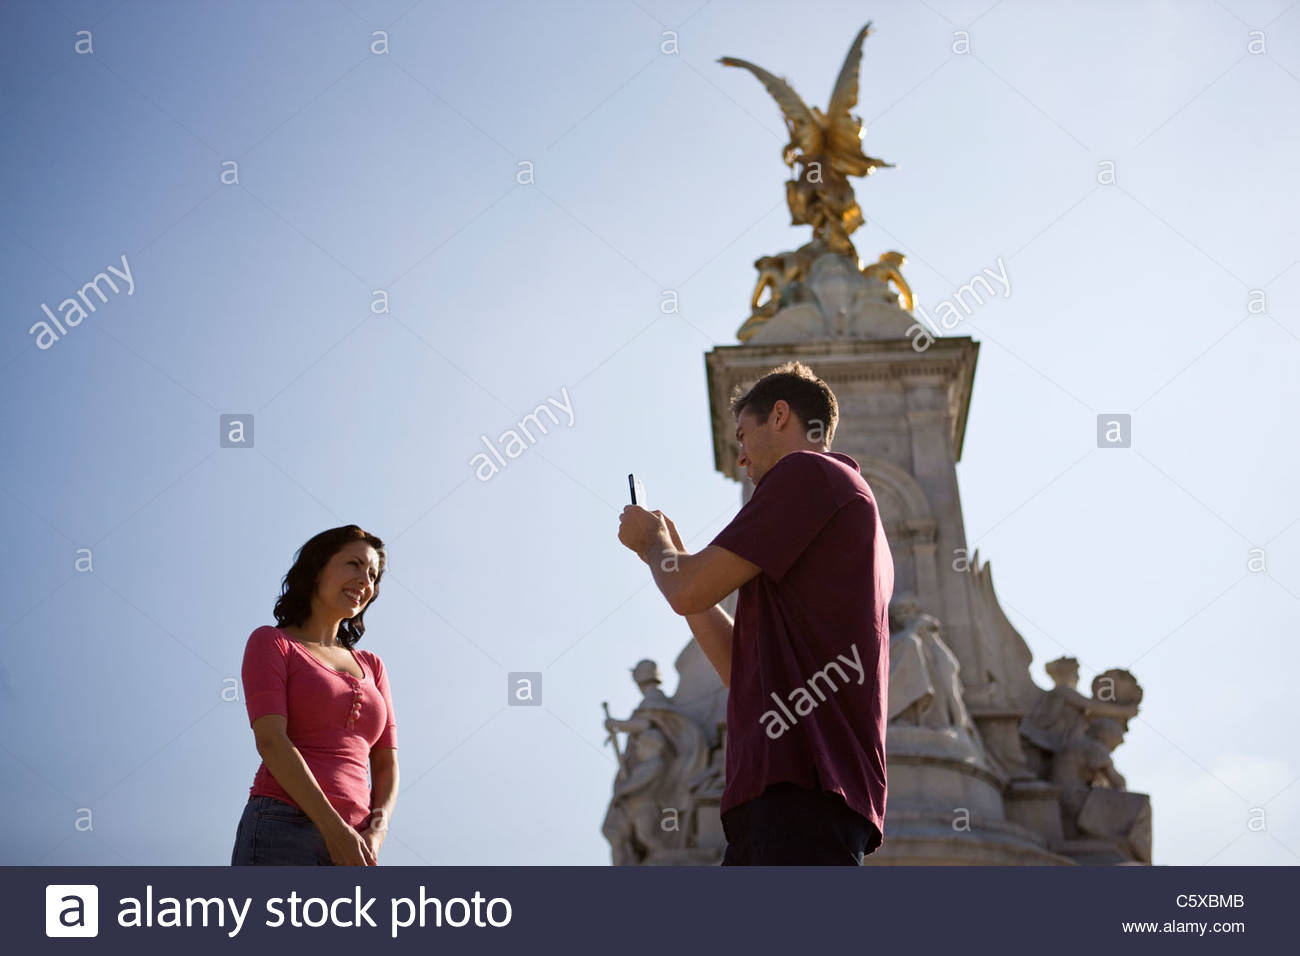 A young man taking a picture of his girlfriend in front of the Victoria Memorial - Stock Image